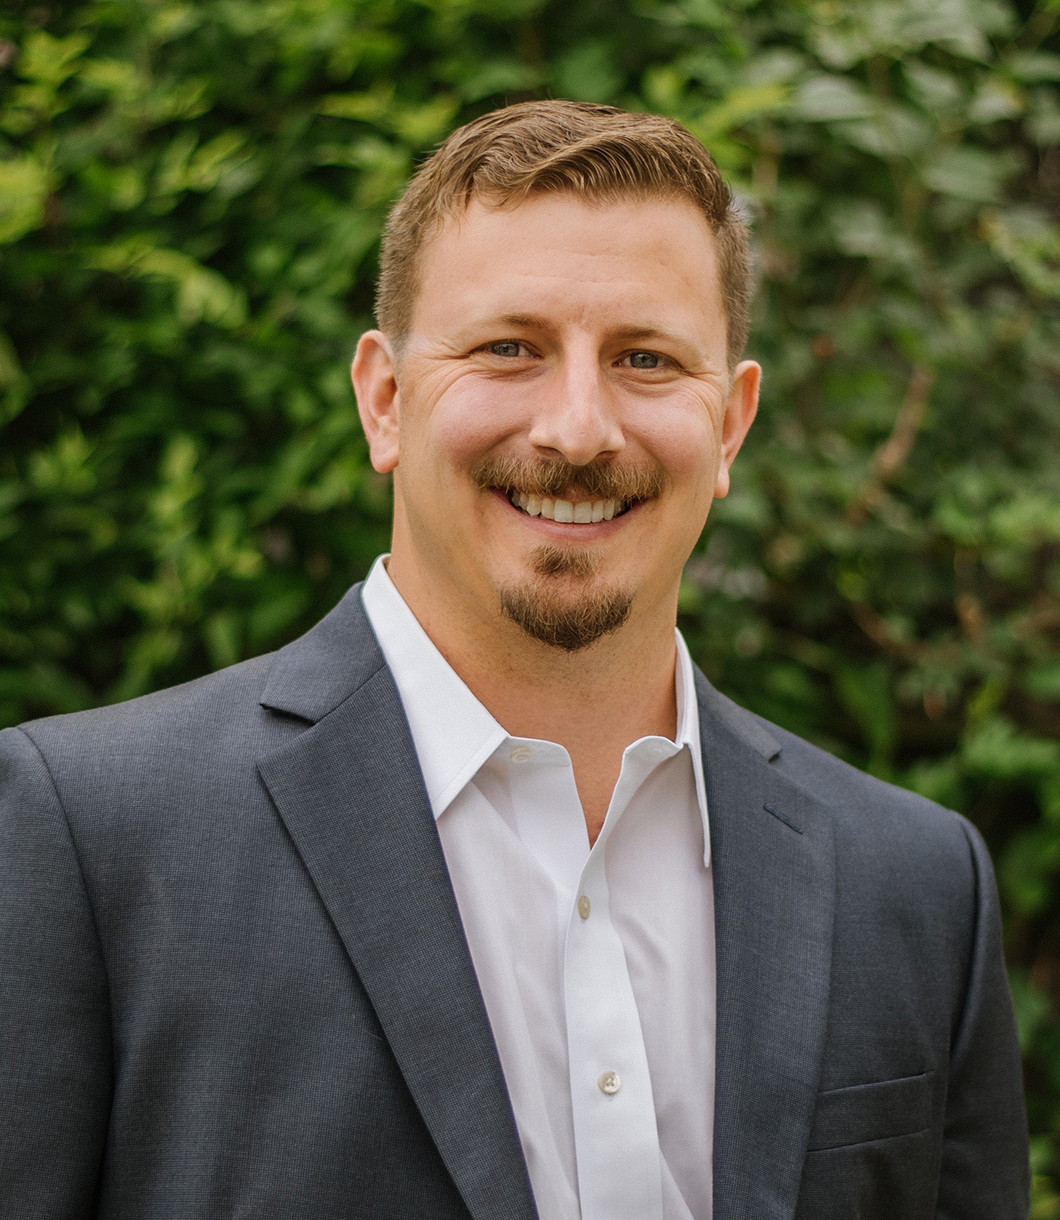 Clay Zapalac - Agent at The Reyna Group